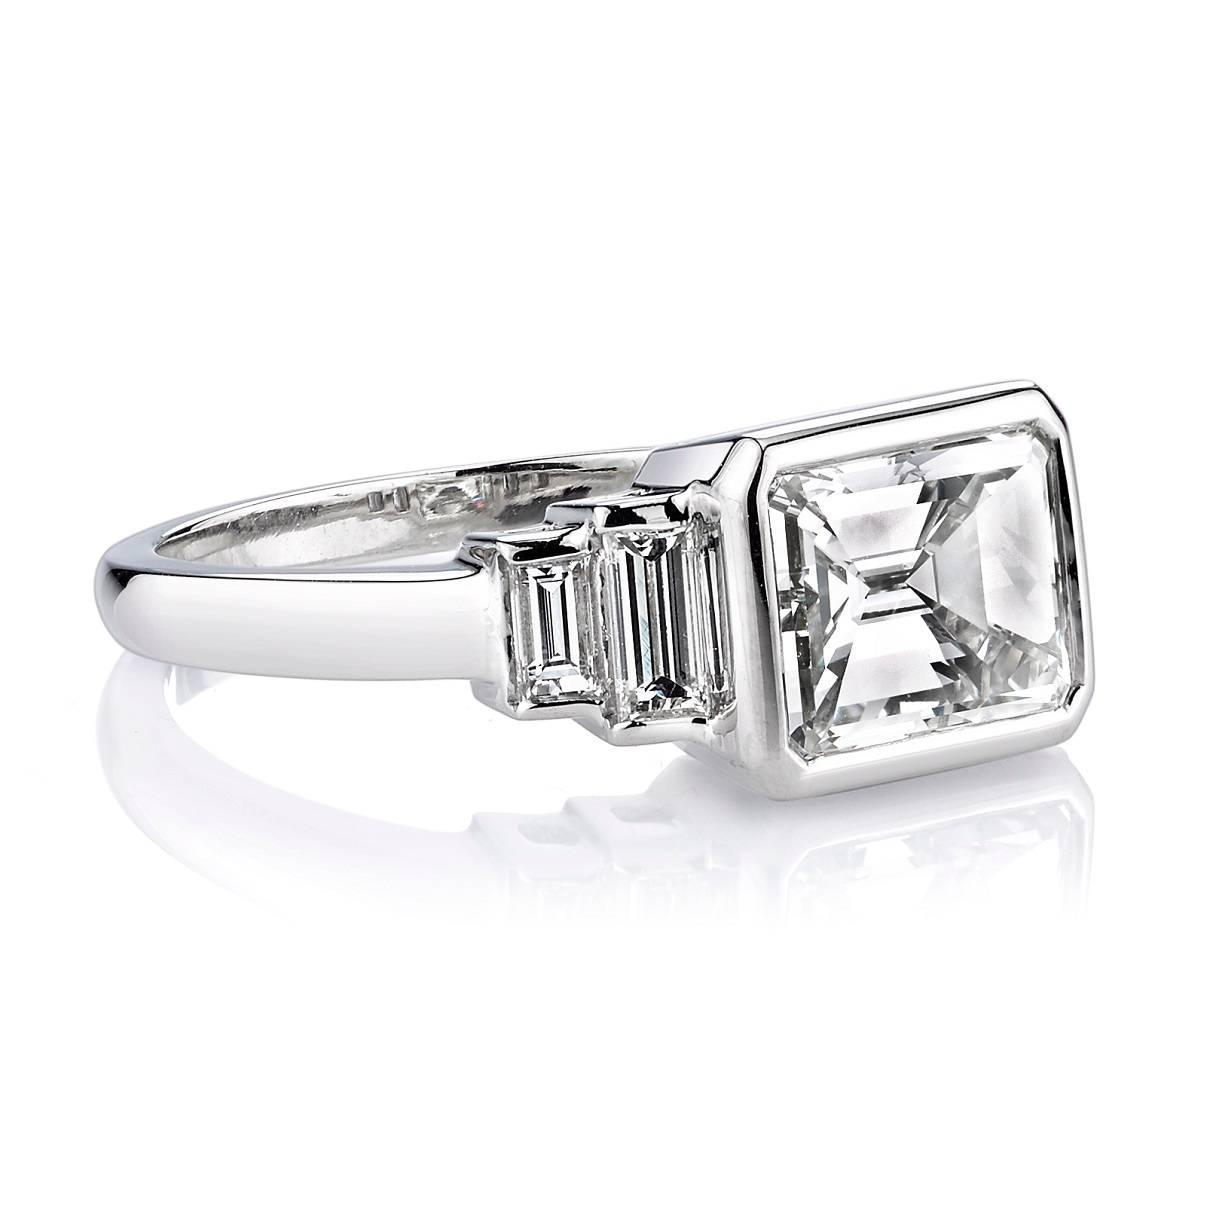 Art Deco 2 40 Carat GIA Cert Emerald Cut Diamond Platinum Engagement Ring For